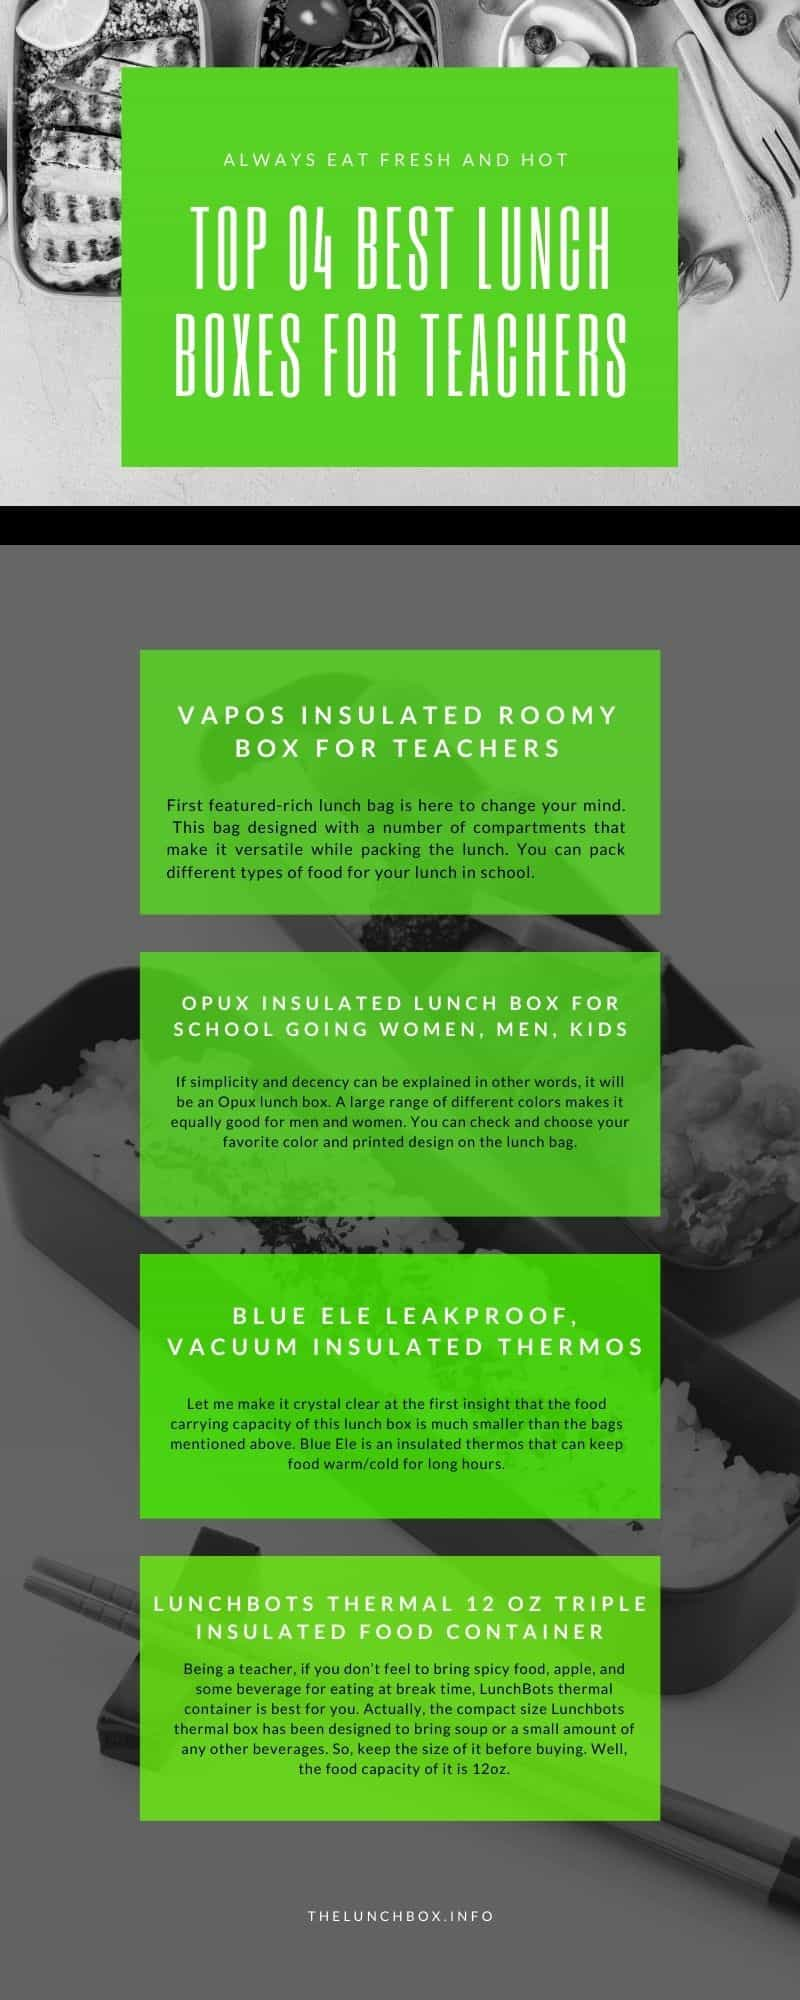 Infographic: Best Lunch Boxes for Teachers